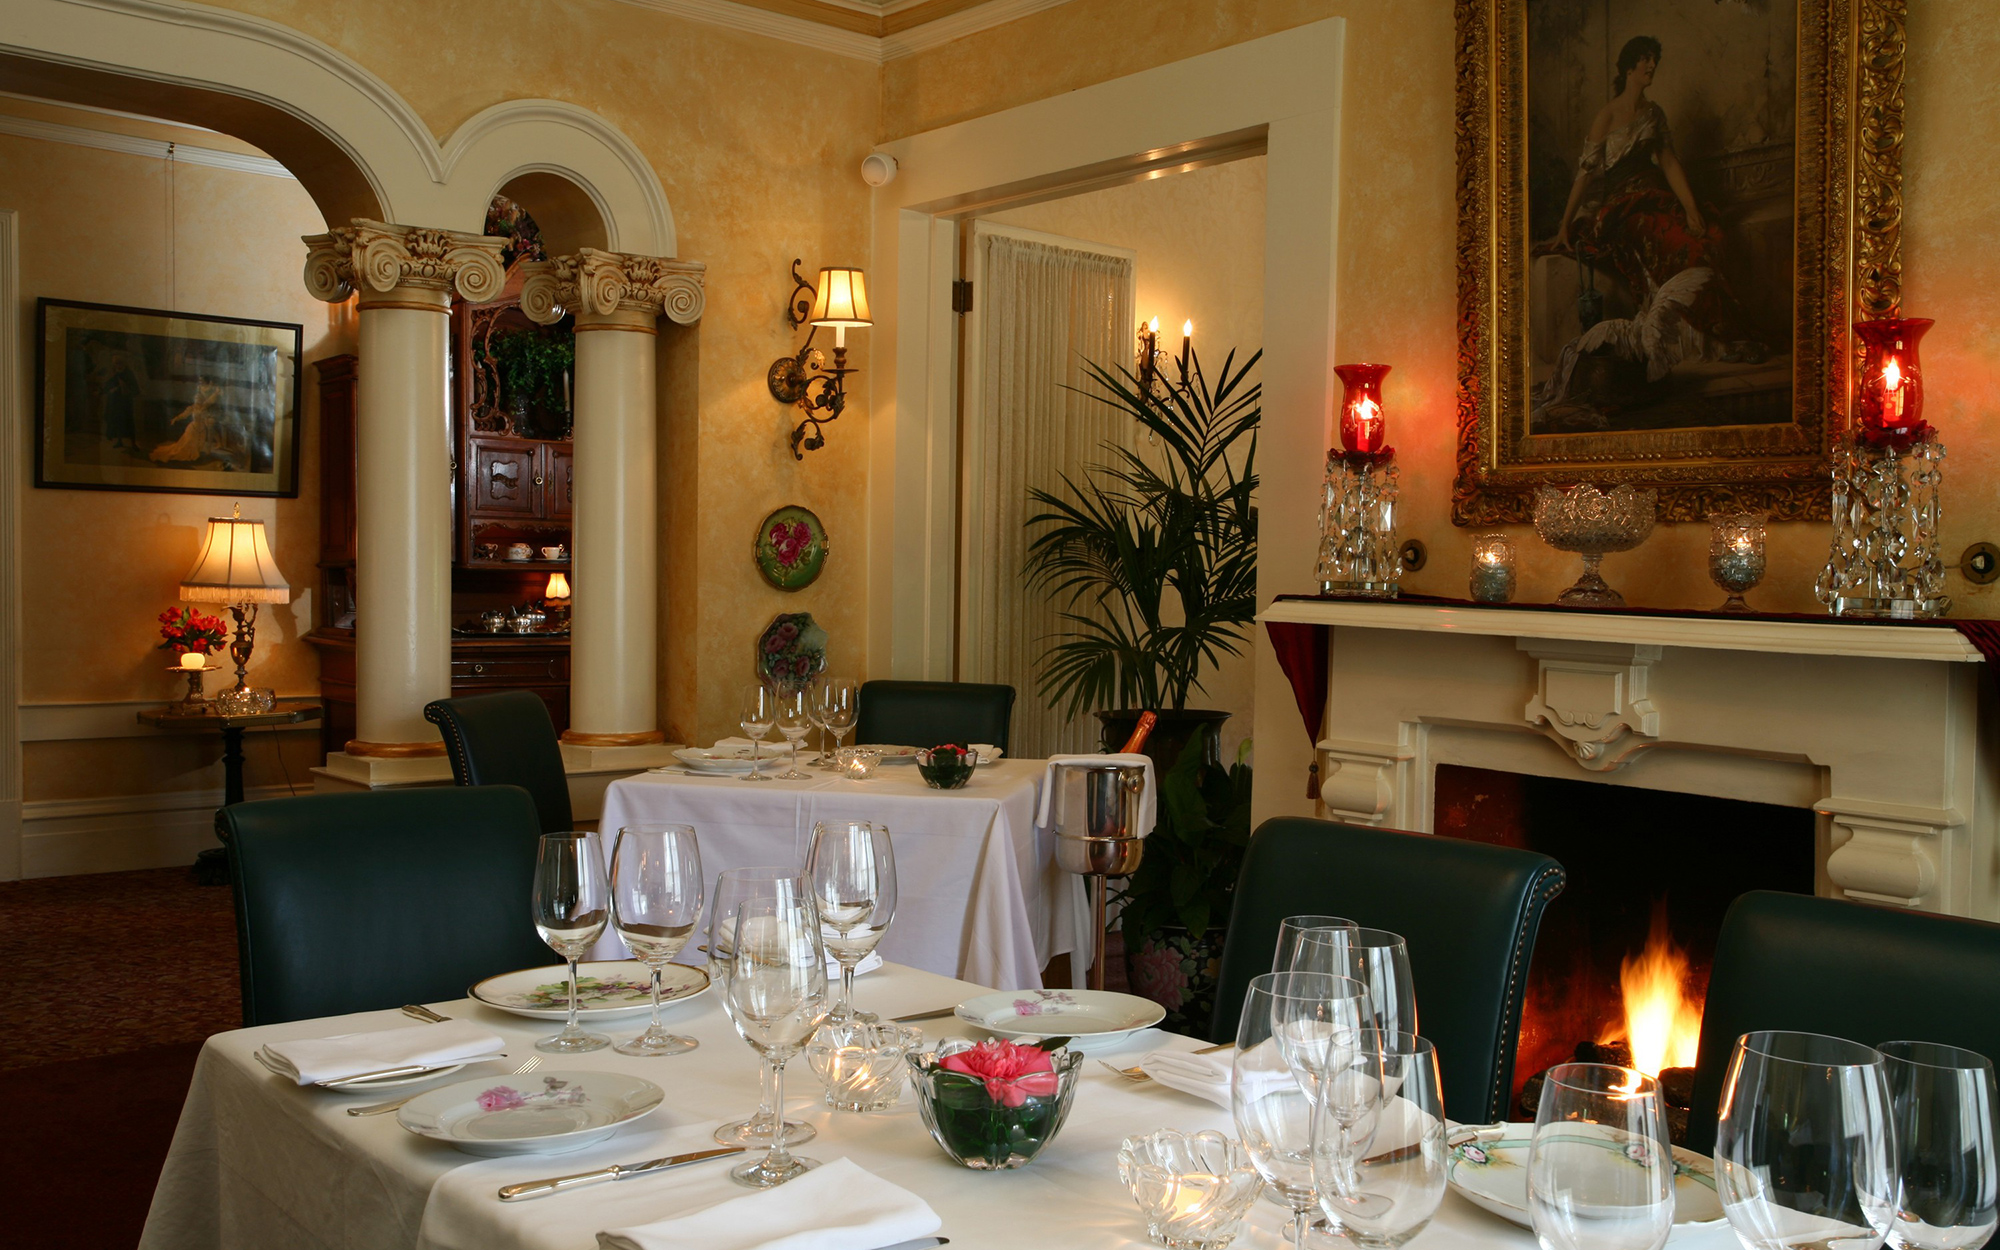 Best Holiday Restaurants in the U.S.: Madrona Manor, Healdsburg, CA